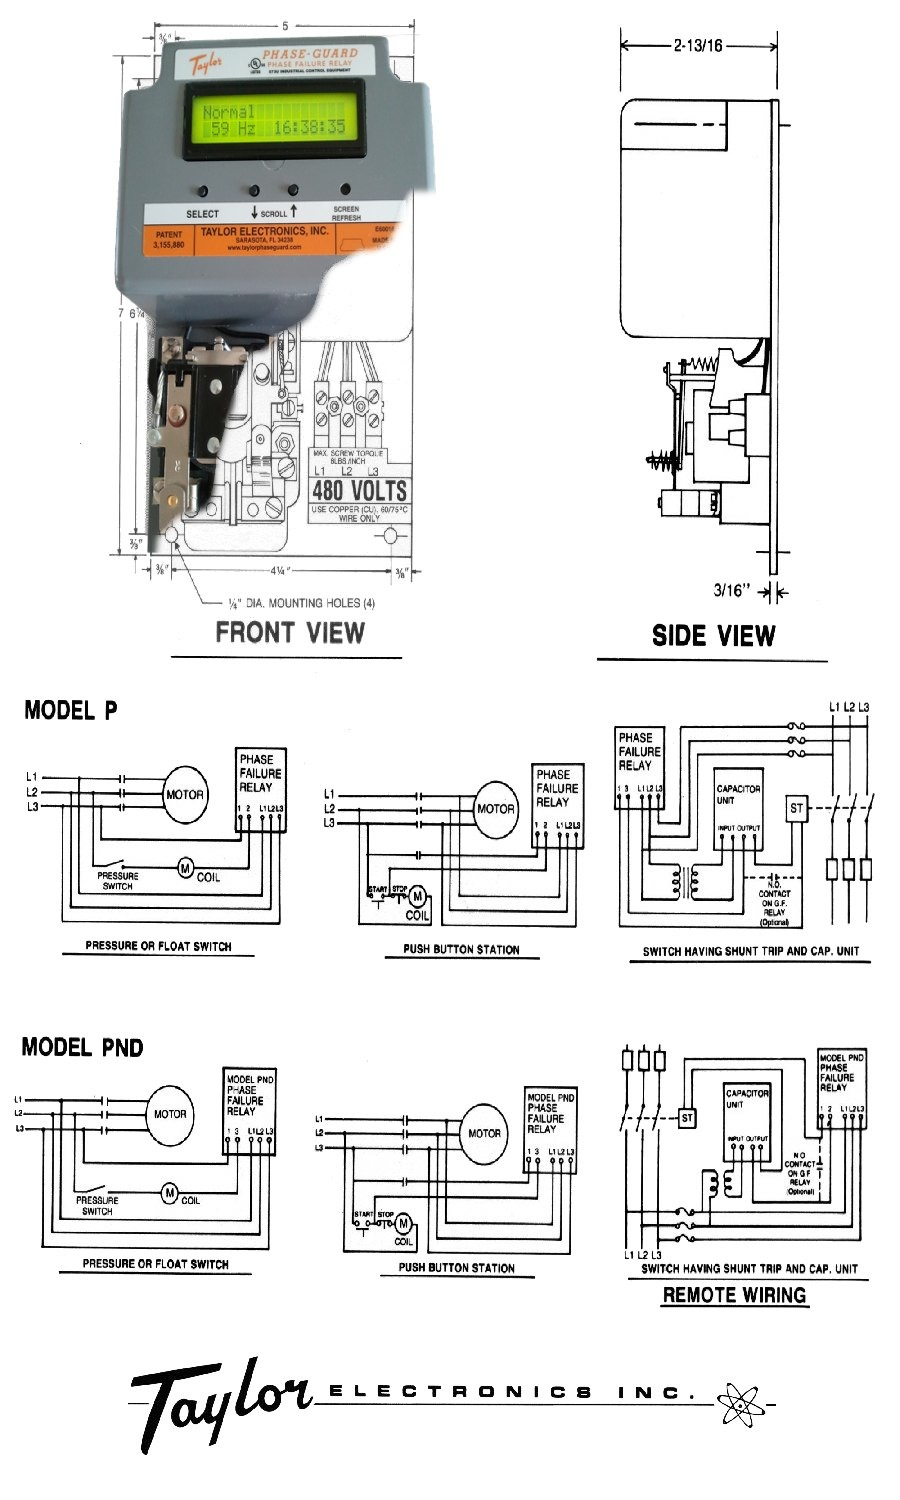 wiring diagram electronics inc